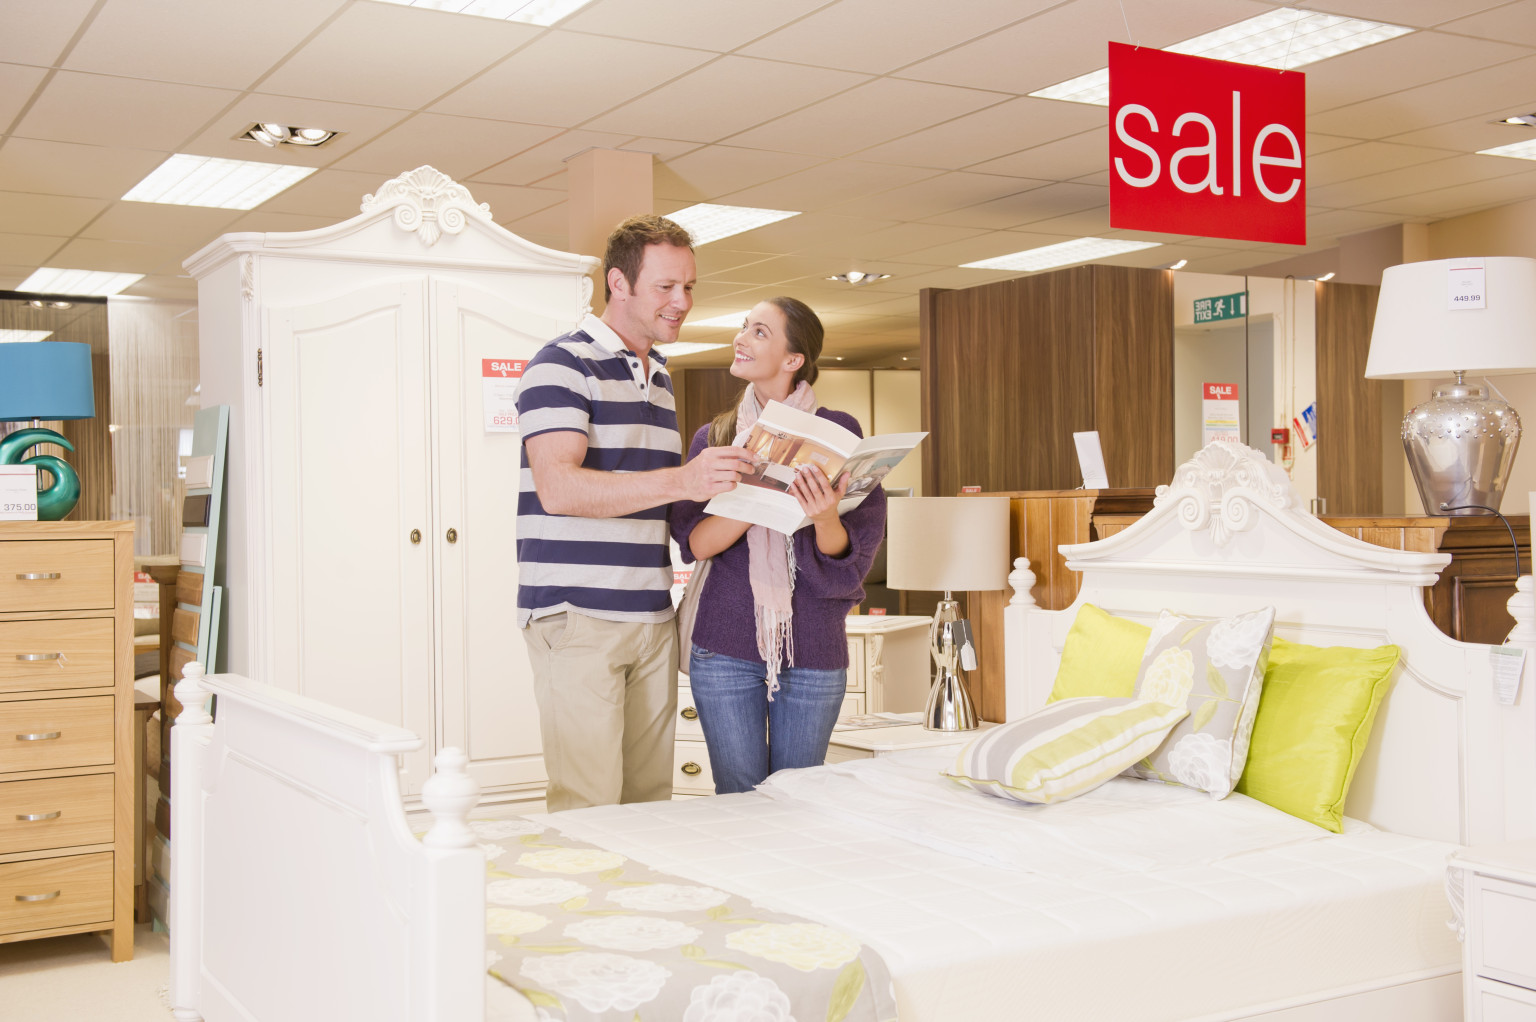 Furniture Stores Under Investigation For 39Misleading Prices39